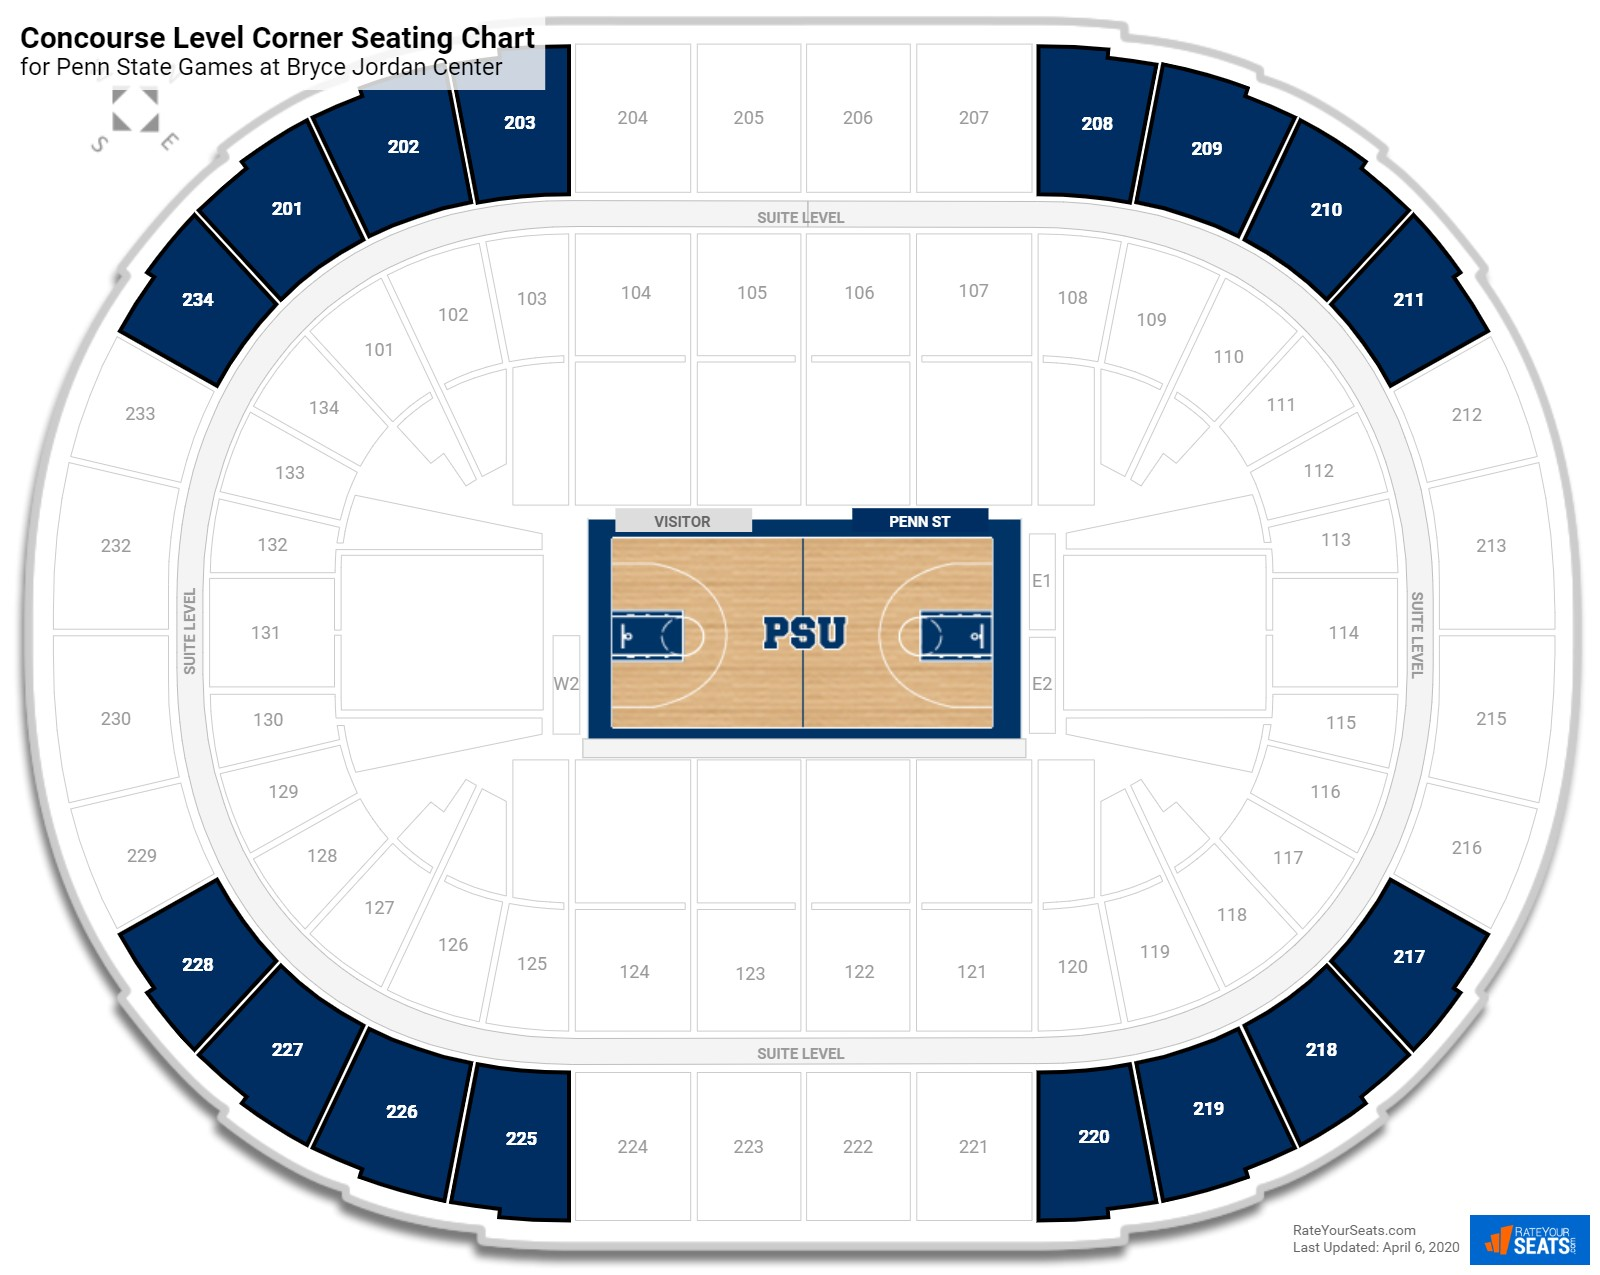 Bryce Jordan Center Concourse Level Corner seating chart